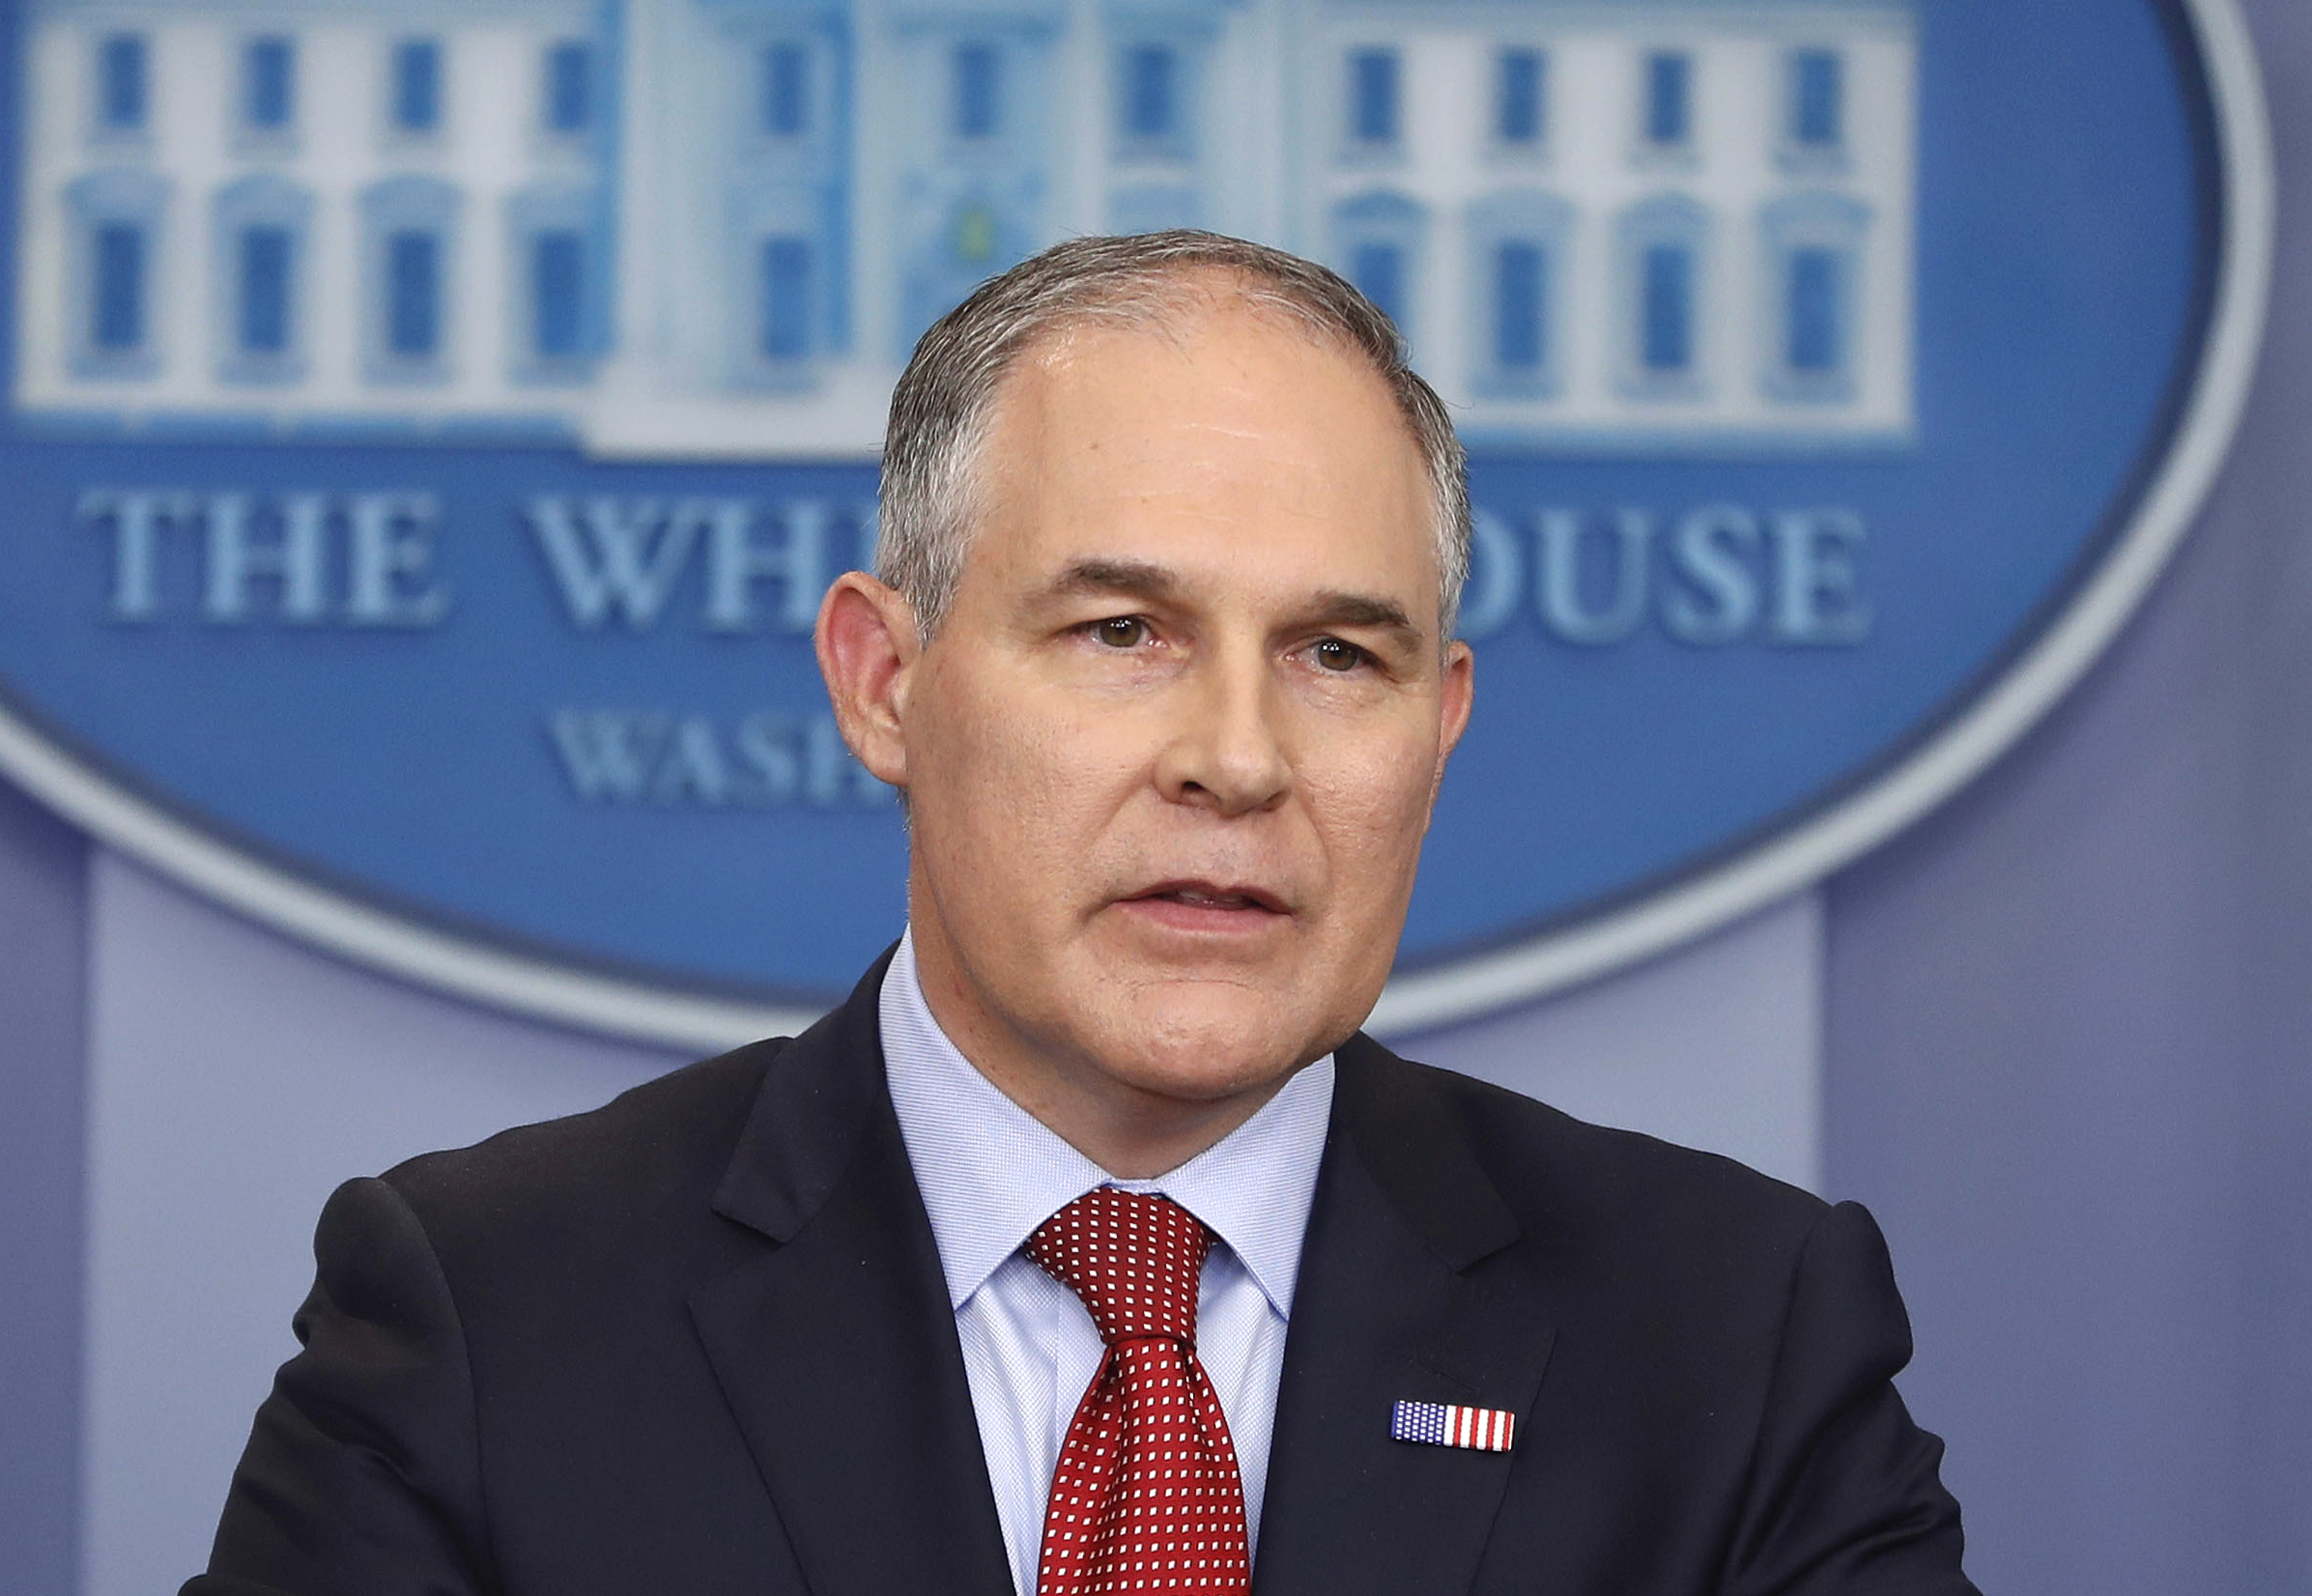 "Trump Climate Plan-1 FILE - In this June 2, 2017 file photo, EPA Administrator Scott Pruitt speaks in the Brady Press Briefing Room of the White House in Washington. Speaking in Kentucky on Monday, Pruitt said he will sign a proposed rule on Tuesday ""to withdraw the so-called clean power plan of the past administration."" (AP Photo/Pablo Martinez Monsivais, File)"